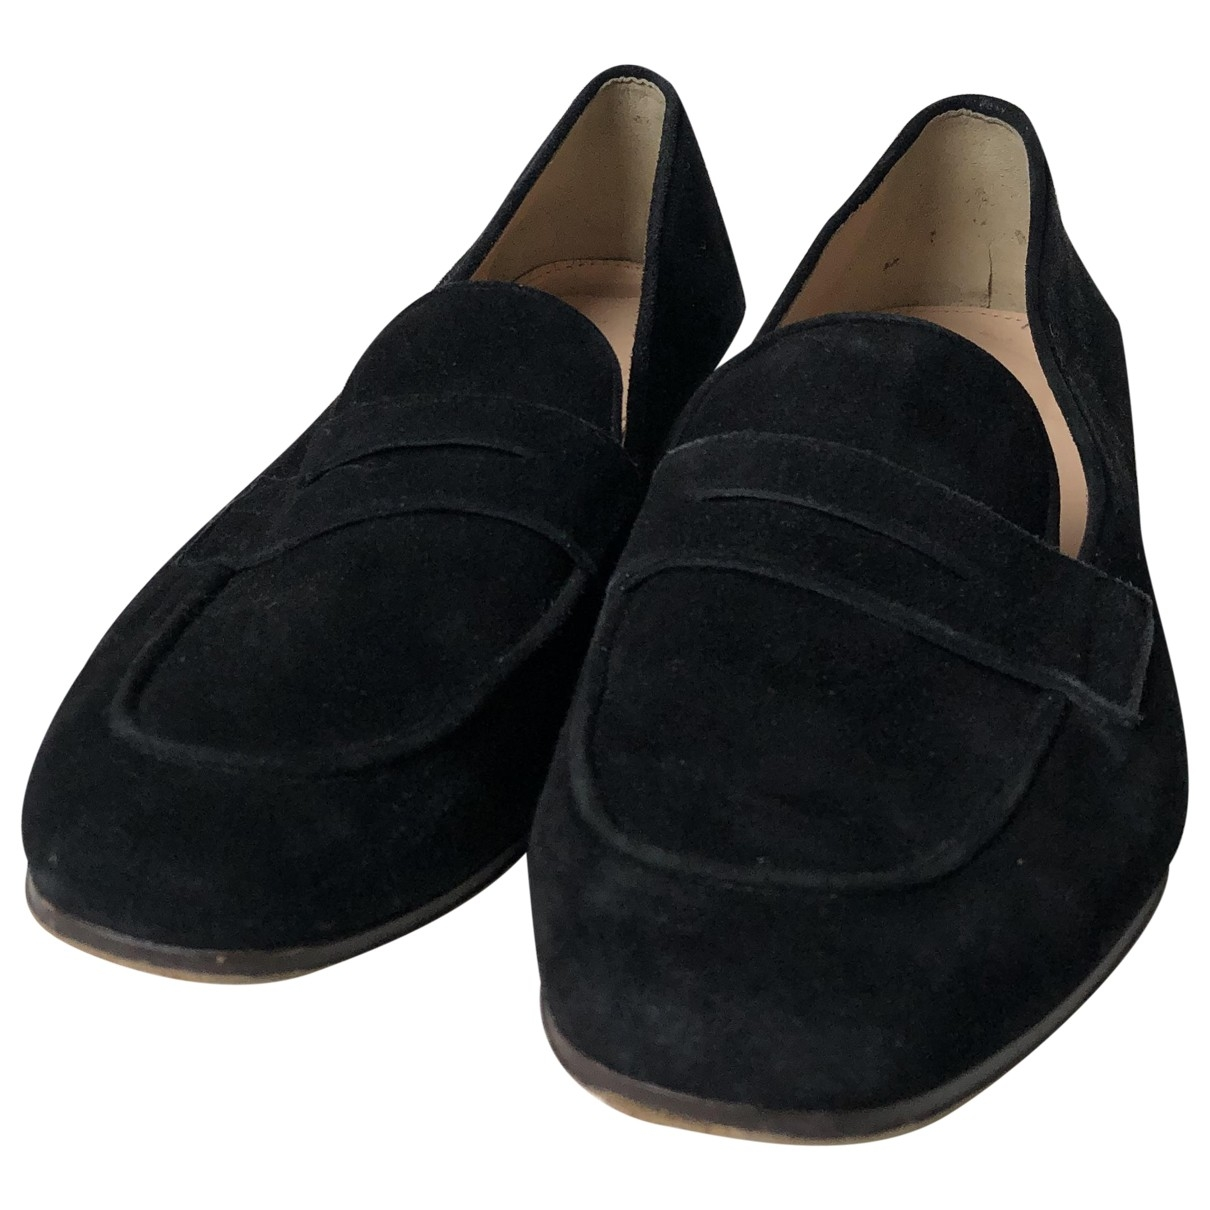 J.crew \N Black Suede Flats for Women 7.5 US